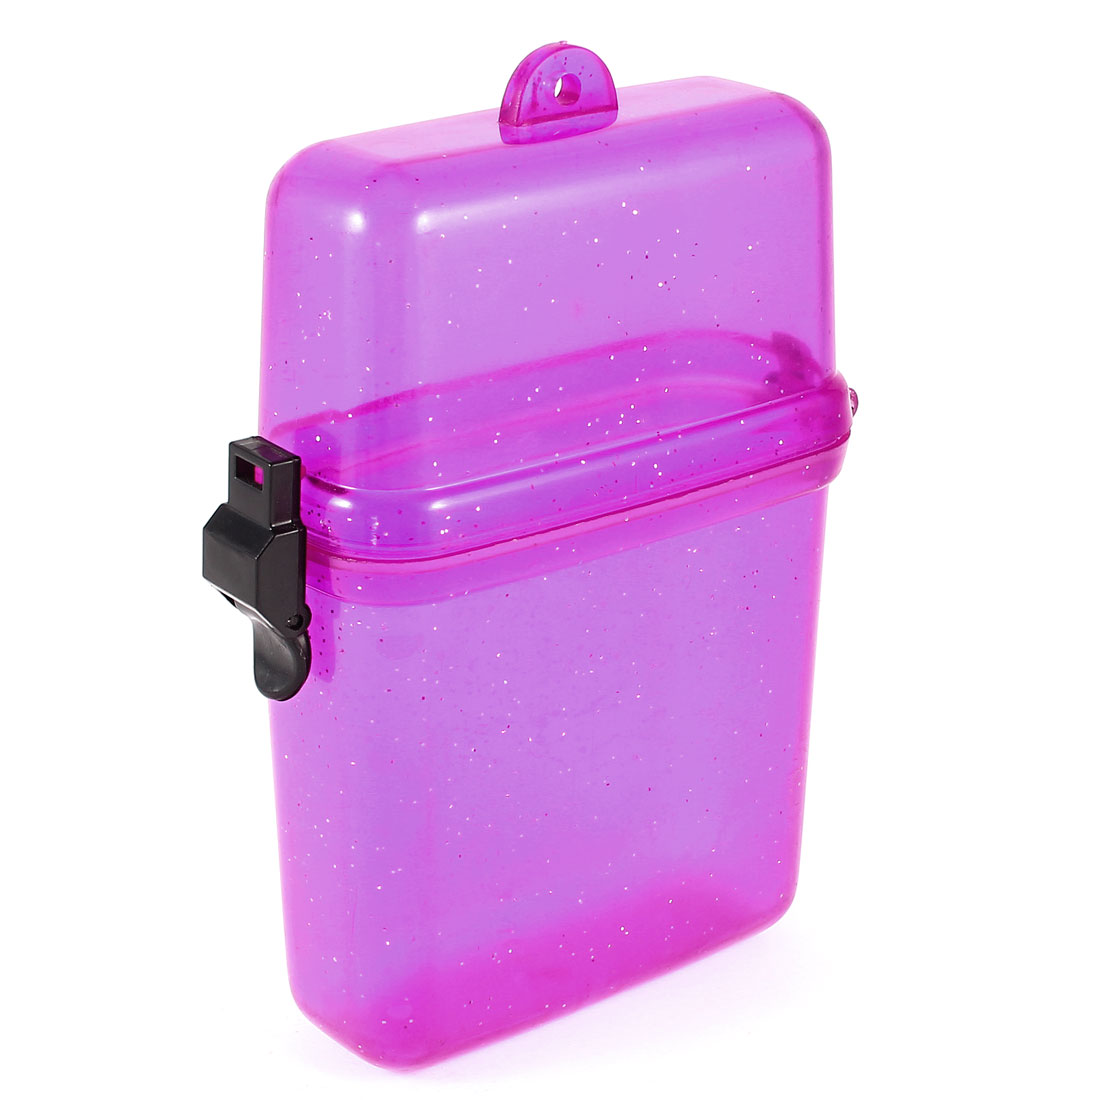 Plastic Waterproof Case Box Clear Purple for Mobile Phone Watches Jewelry